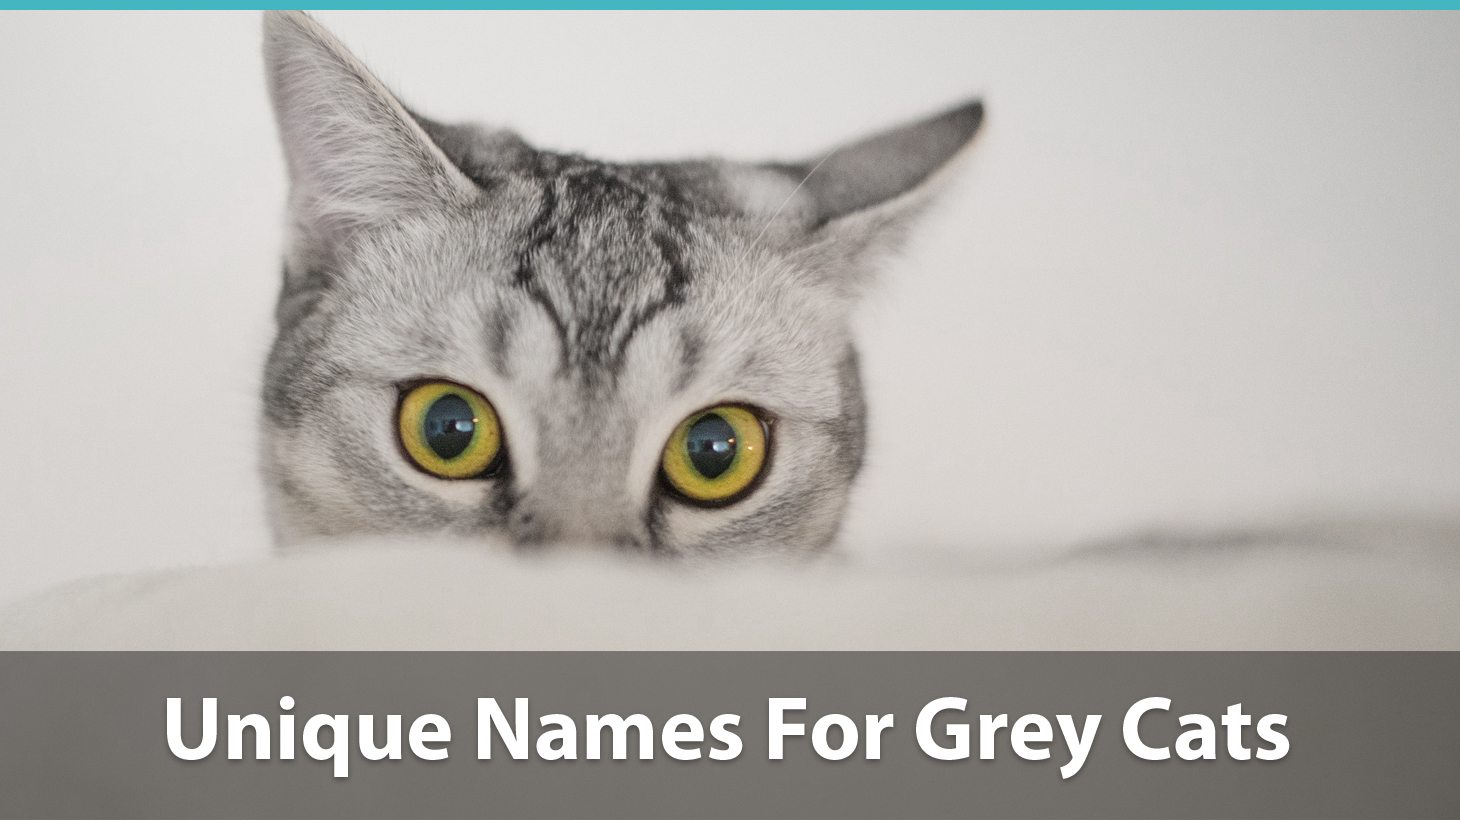 Top 120+ Names For Grey Cats (Cute, Funny, Unique, Puns, And More!)